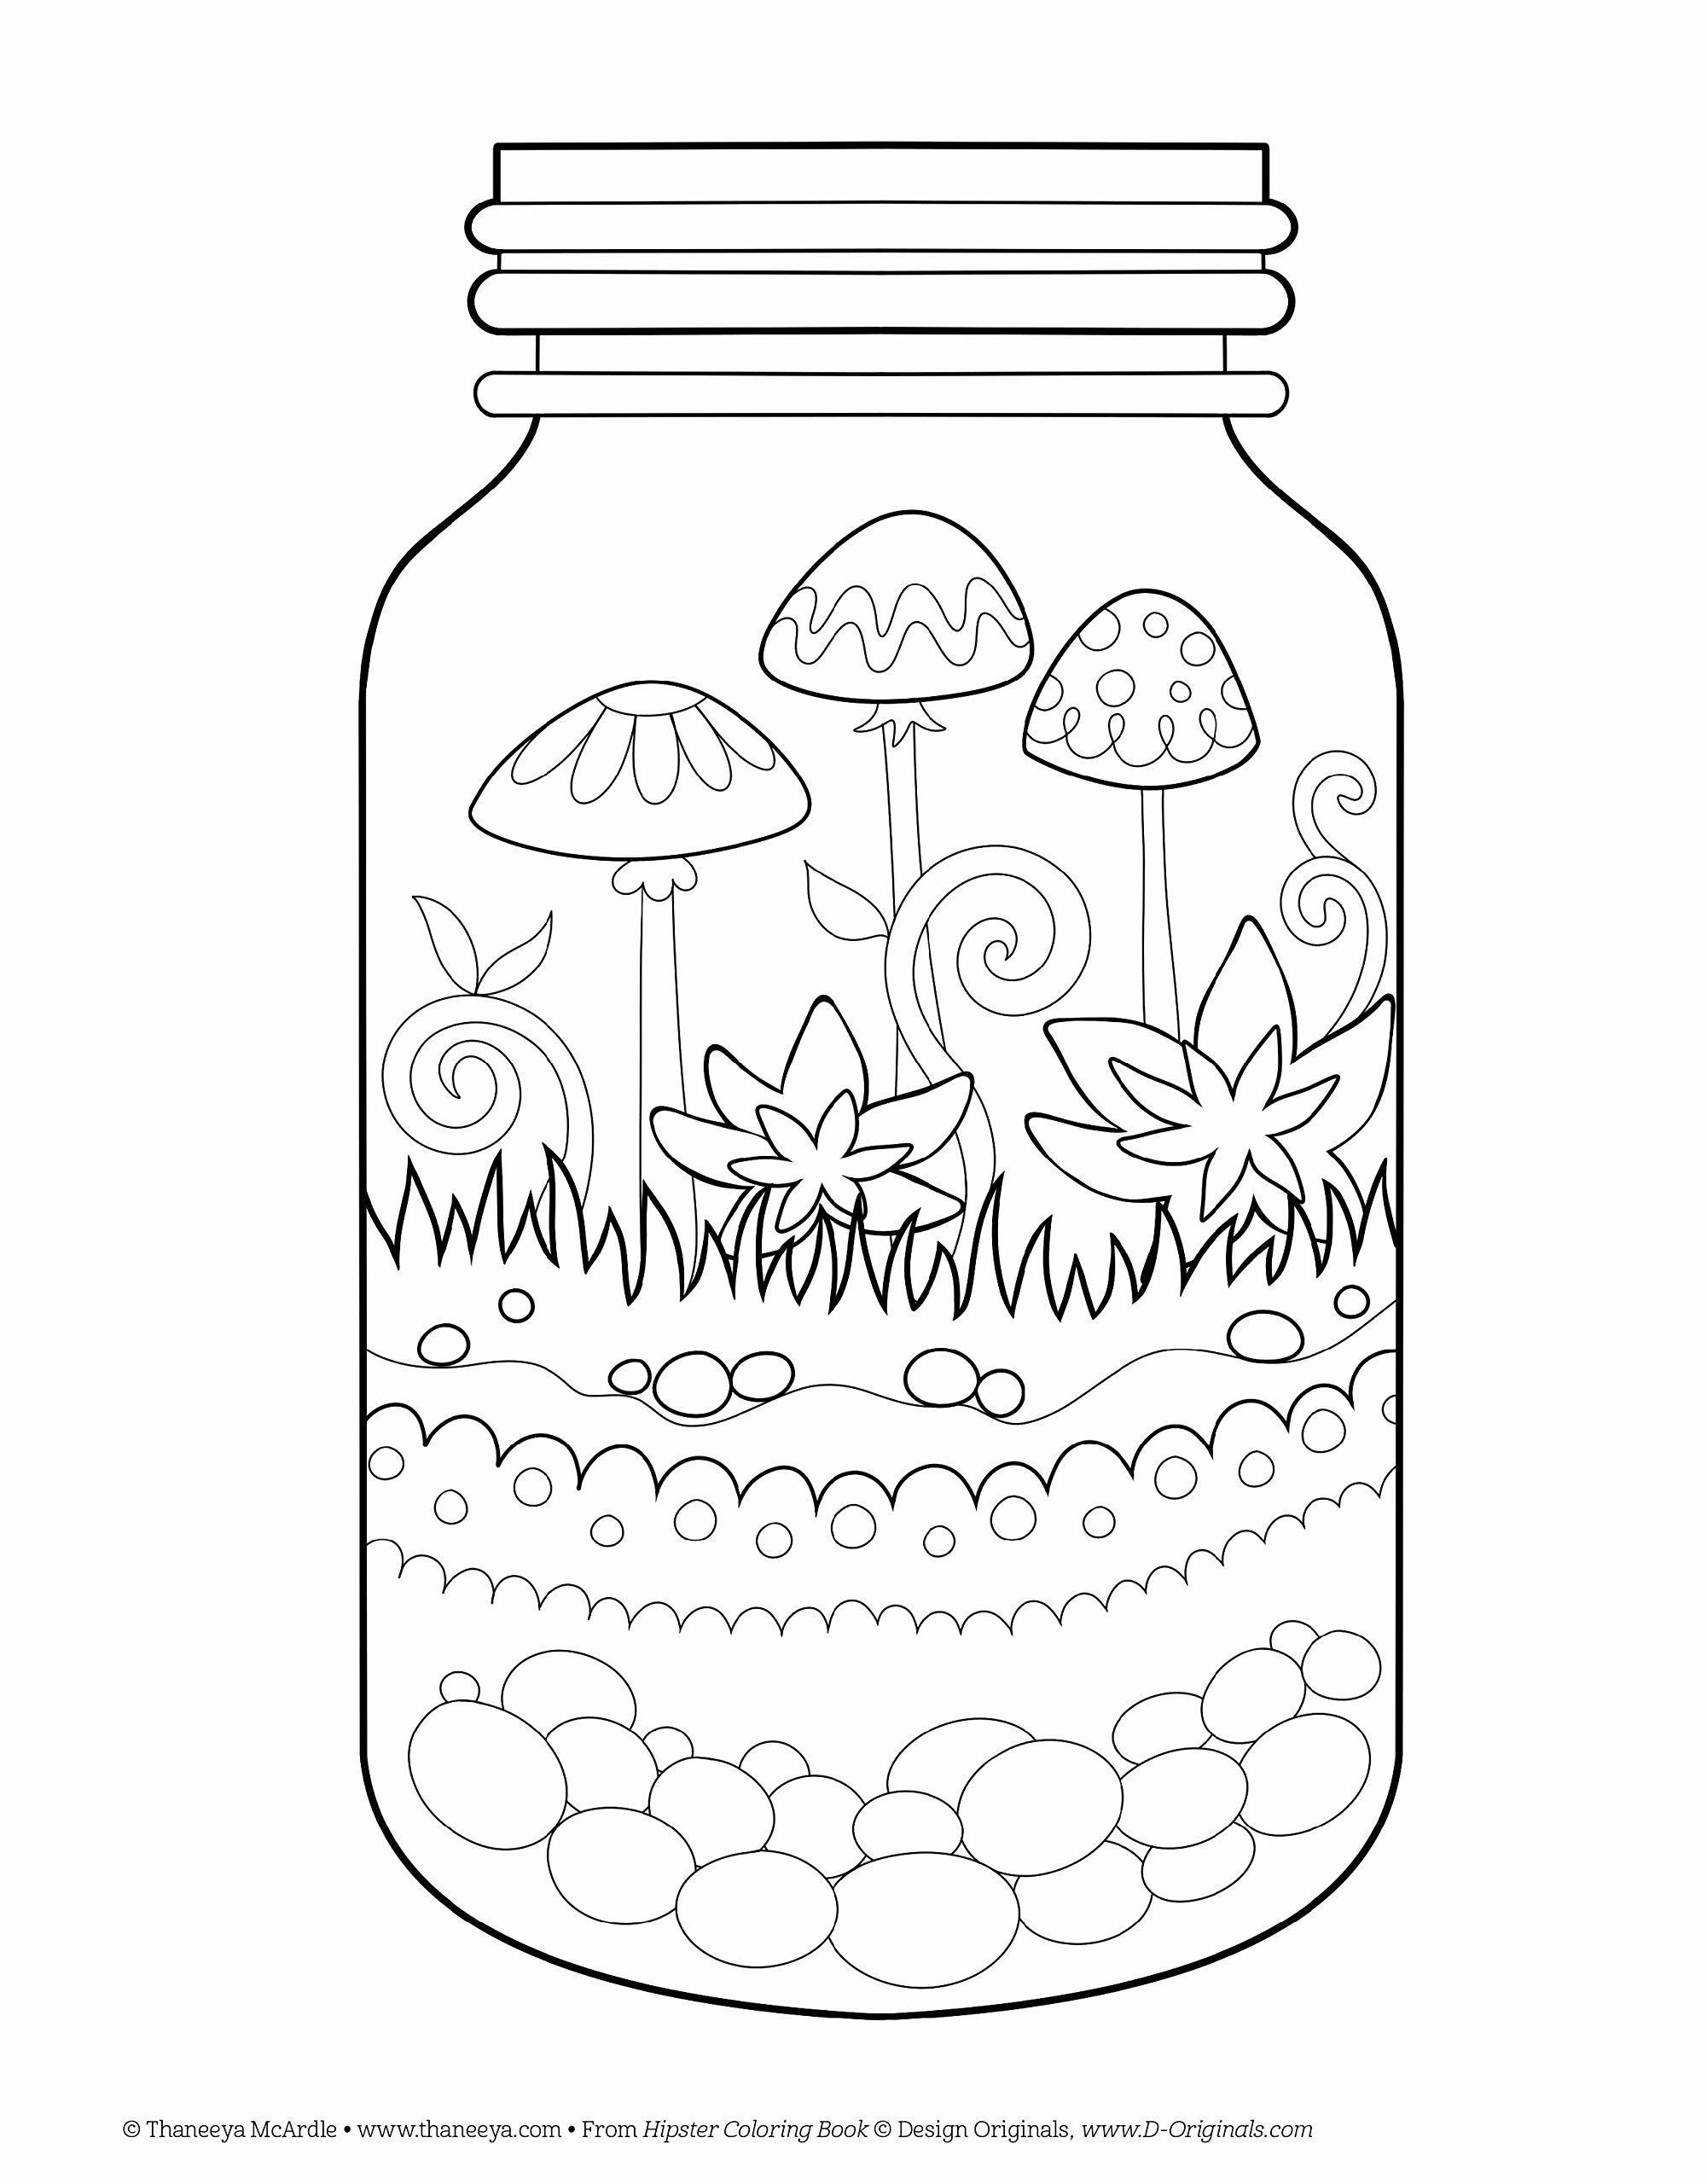 Space Coloring Book Pages In 2020 Tumblr Coloring Pages Designs